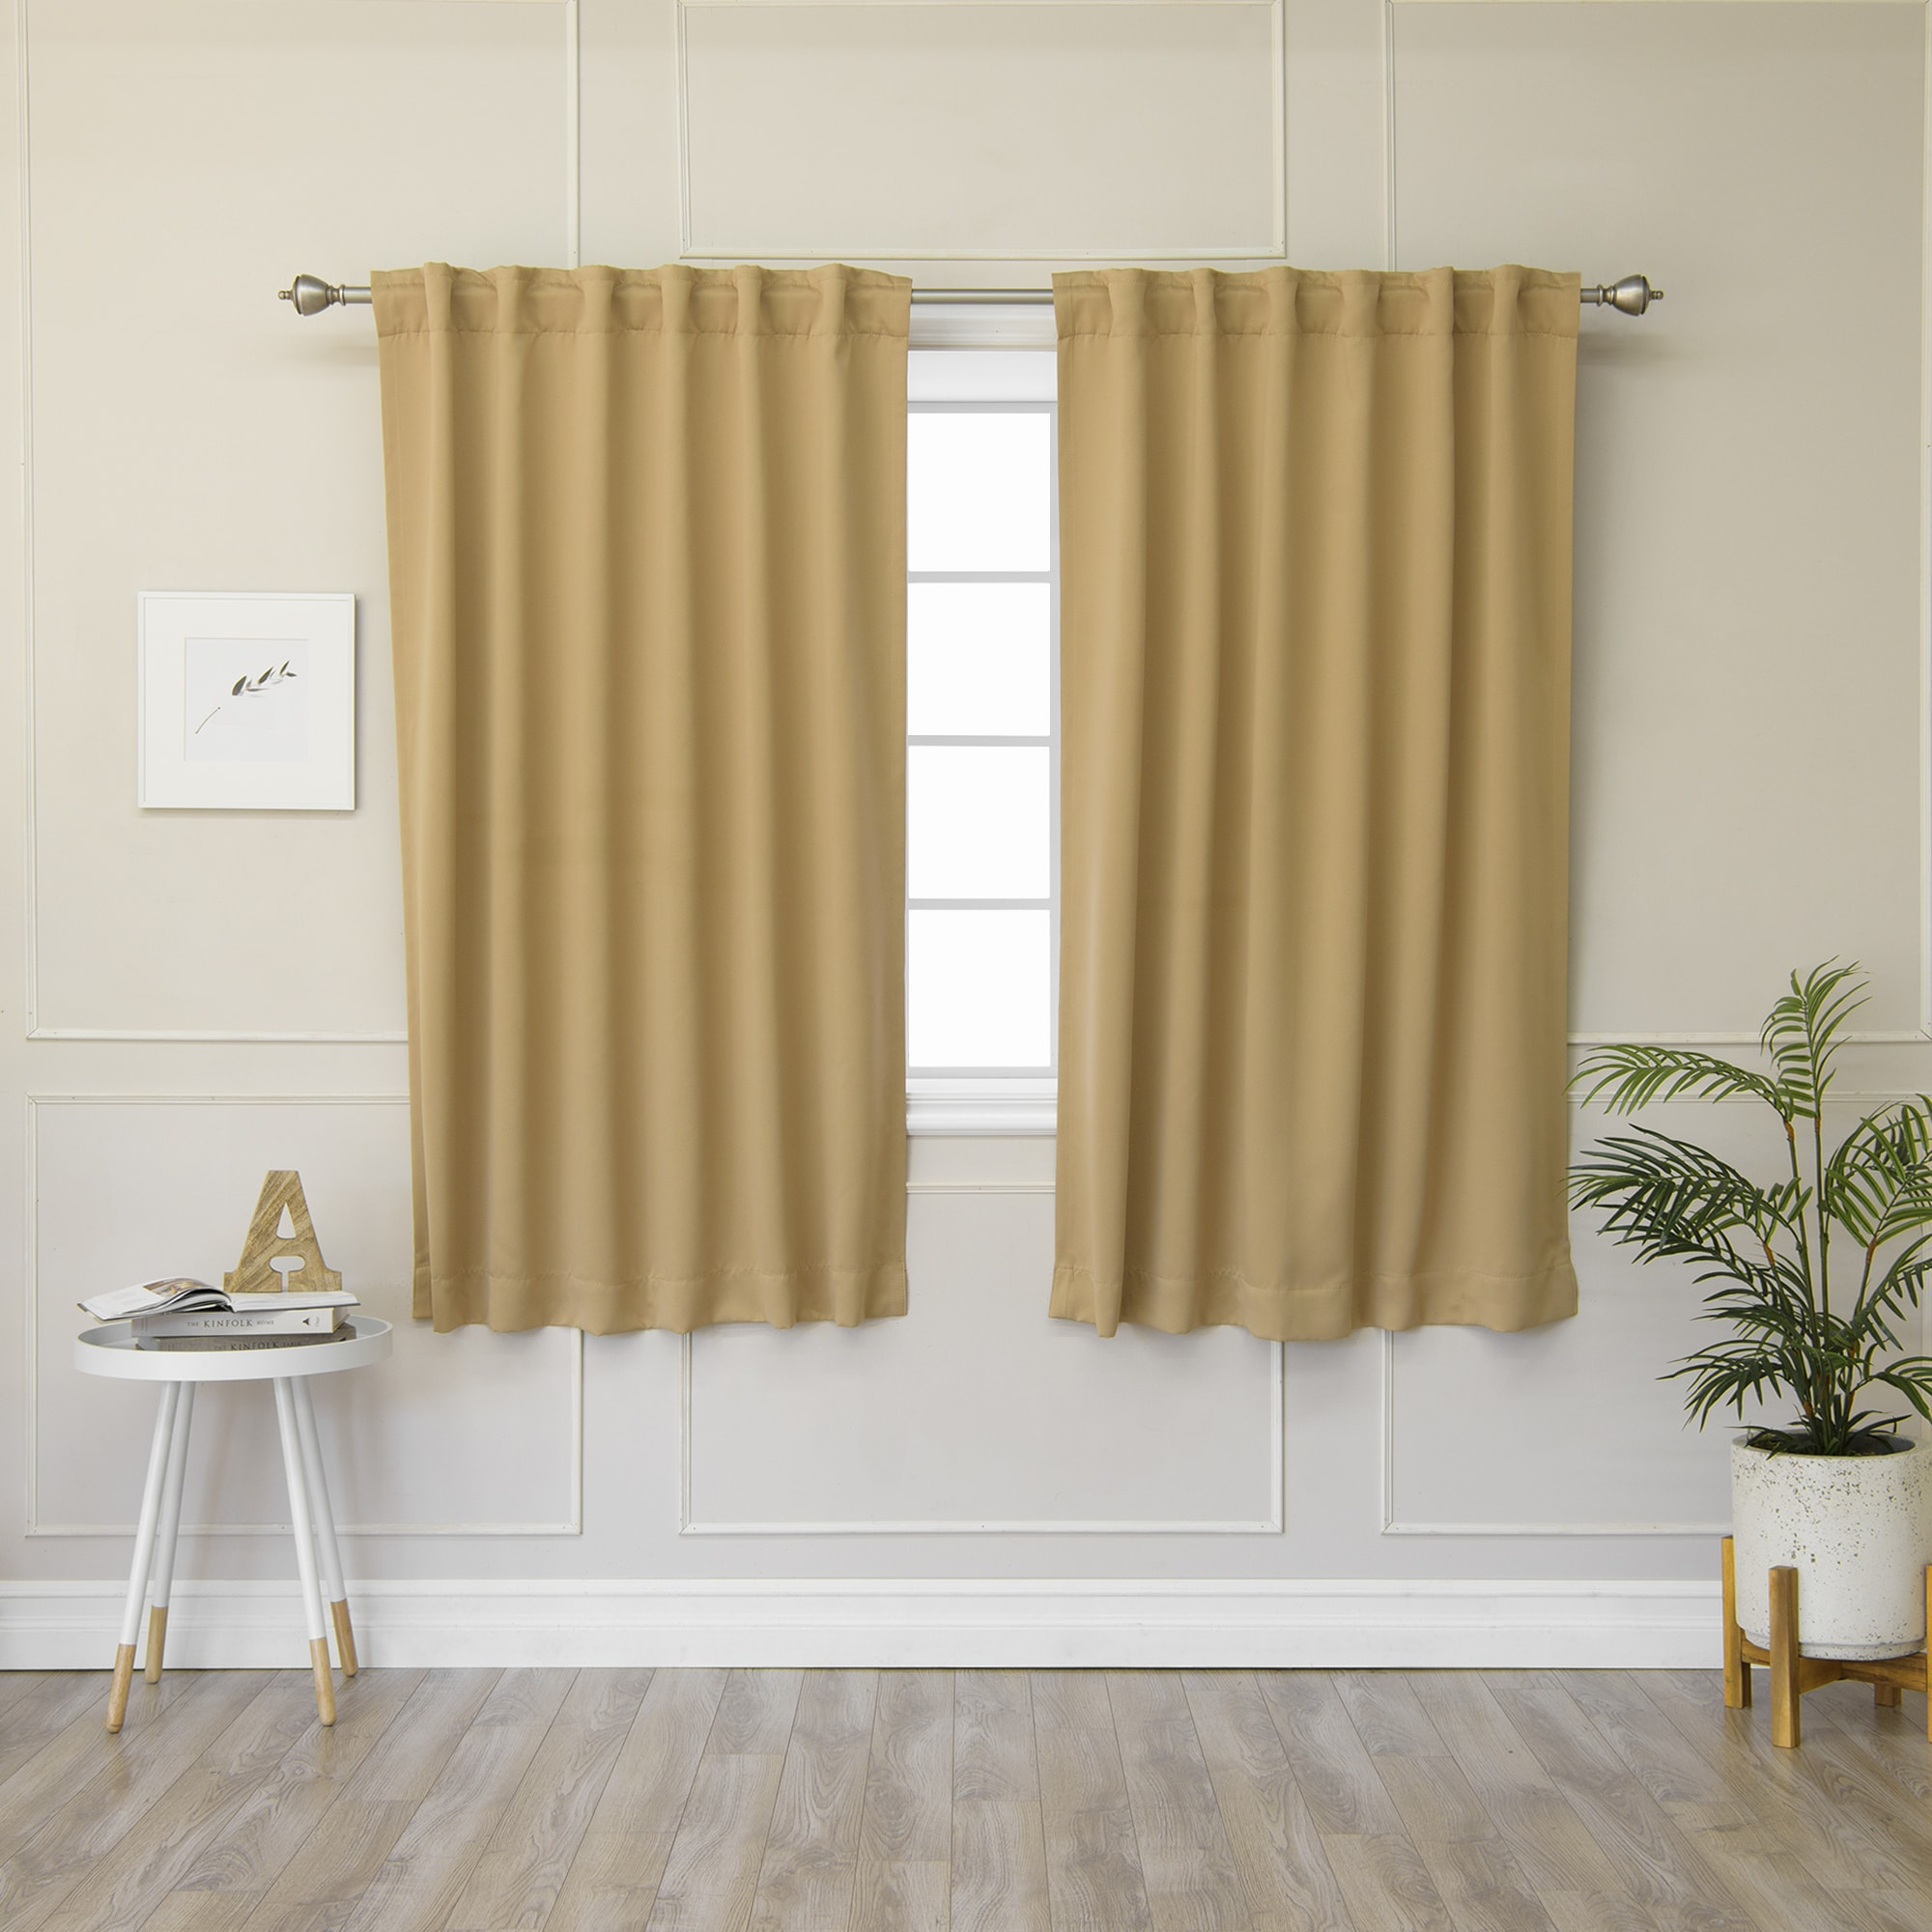 Aurora Home Solid Insulated Thermal 63 Inch Blackout Curtain Regarding Solid Insulated Thermal Blackout Curtain Panel Pairs (View 6 of 30)